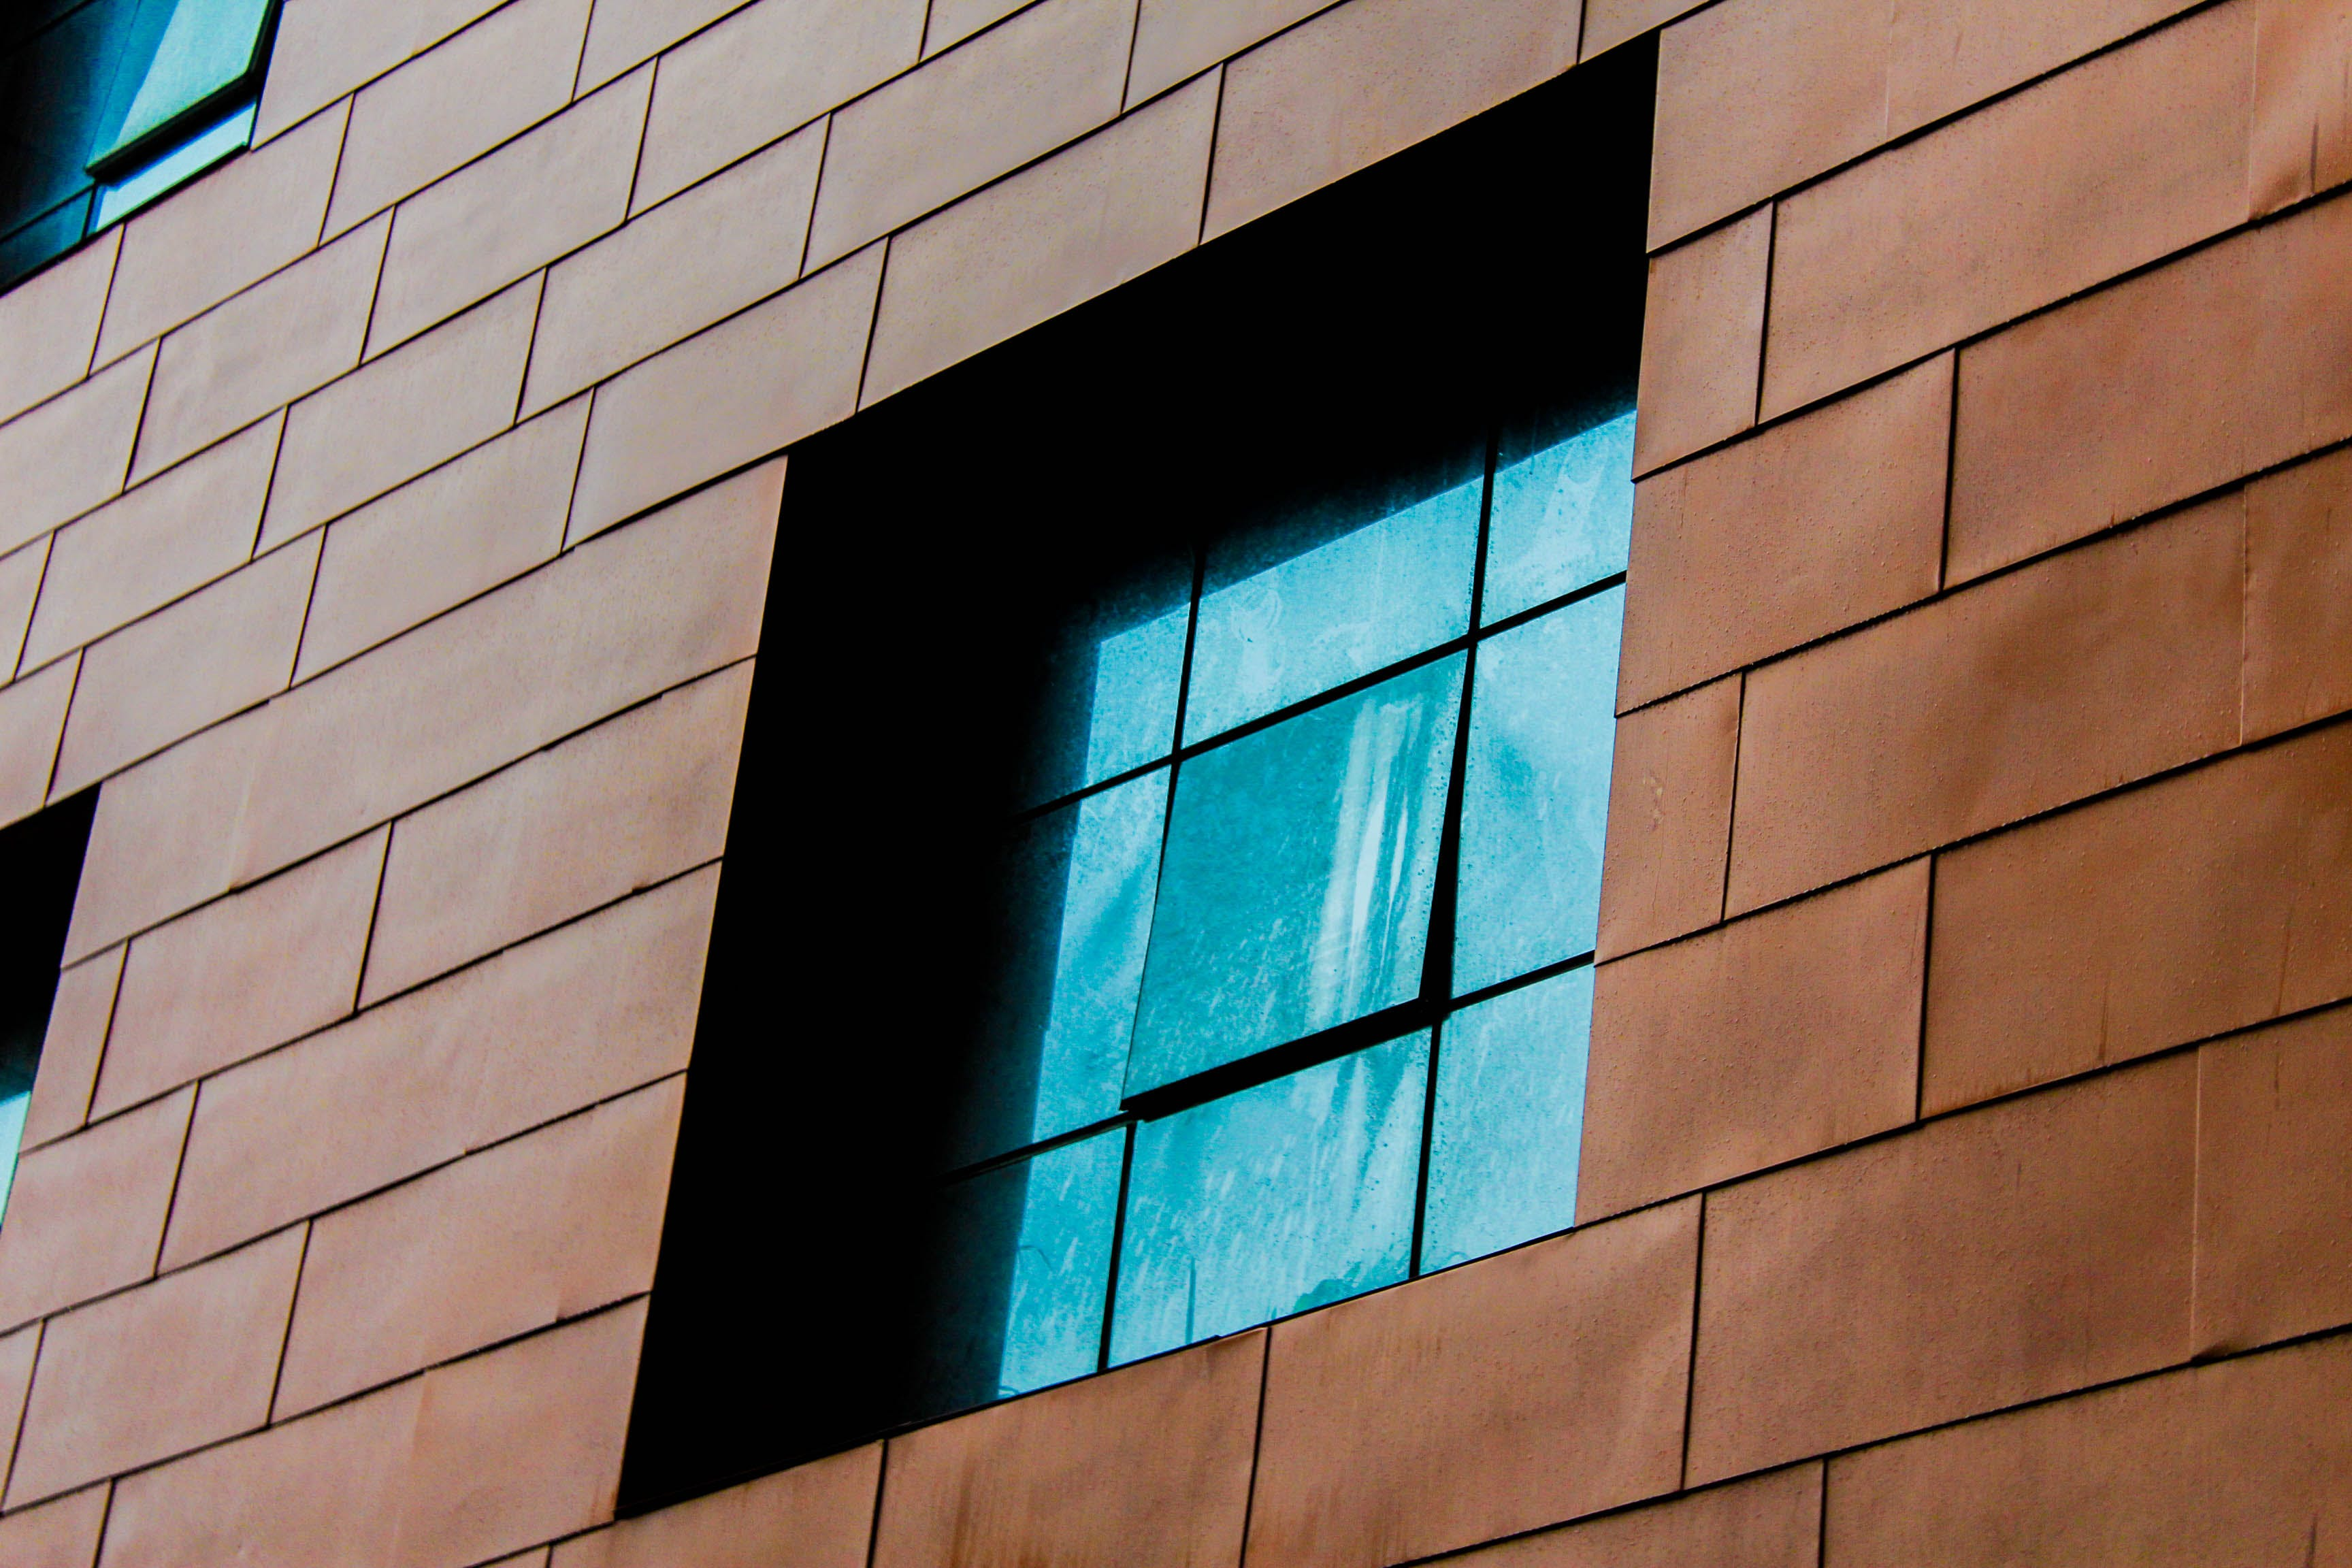 Free stock photo of blue window, building, building exterior, glass window